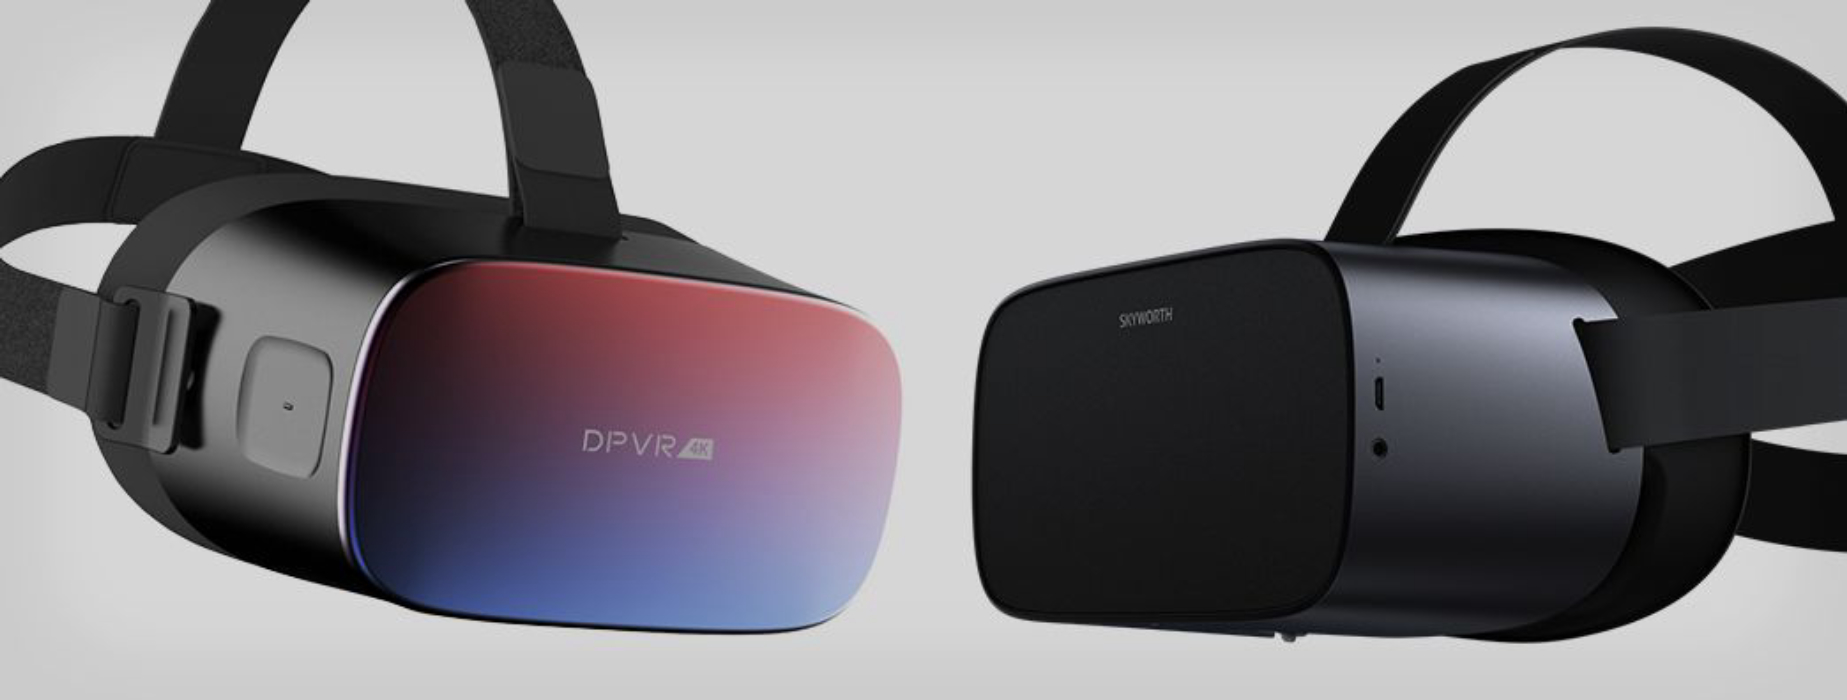 Showtime VR supports DPVR and Skyworth headsets